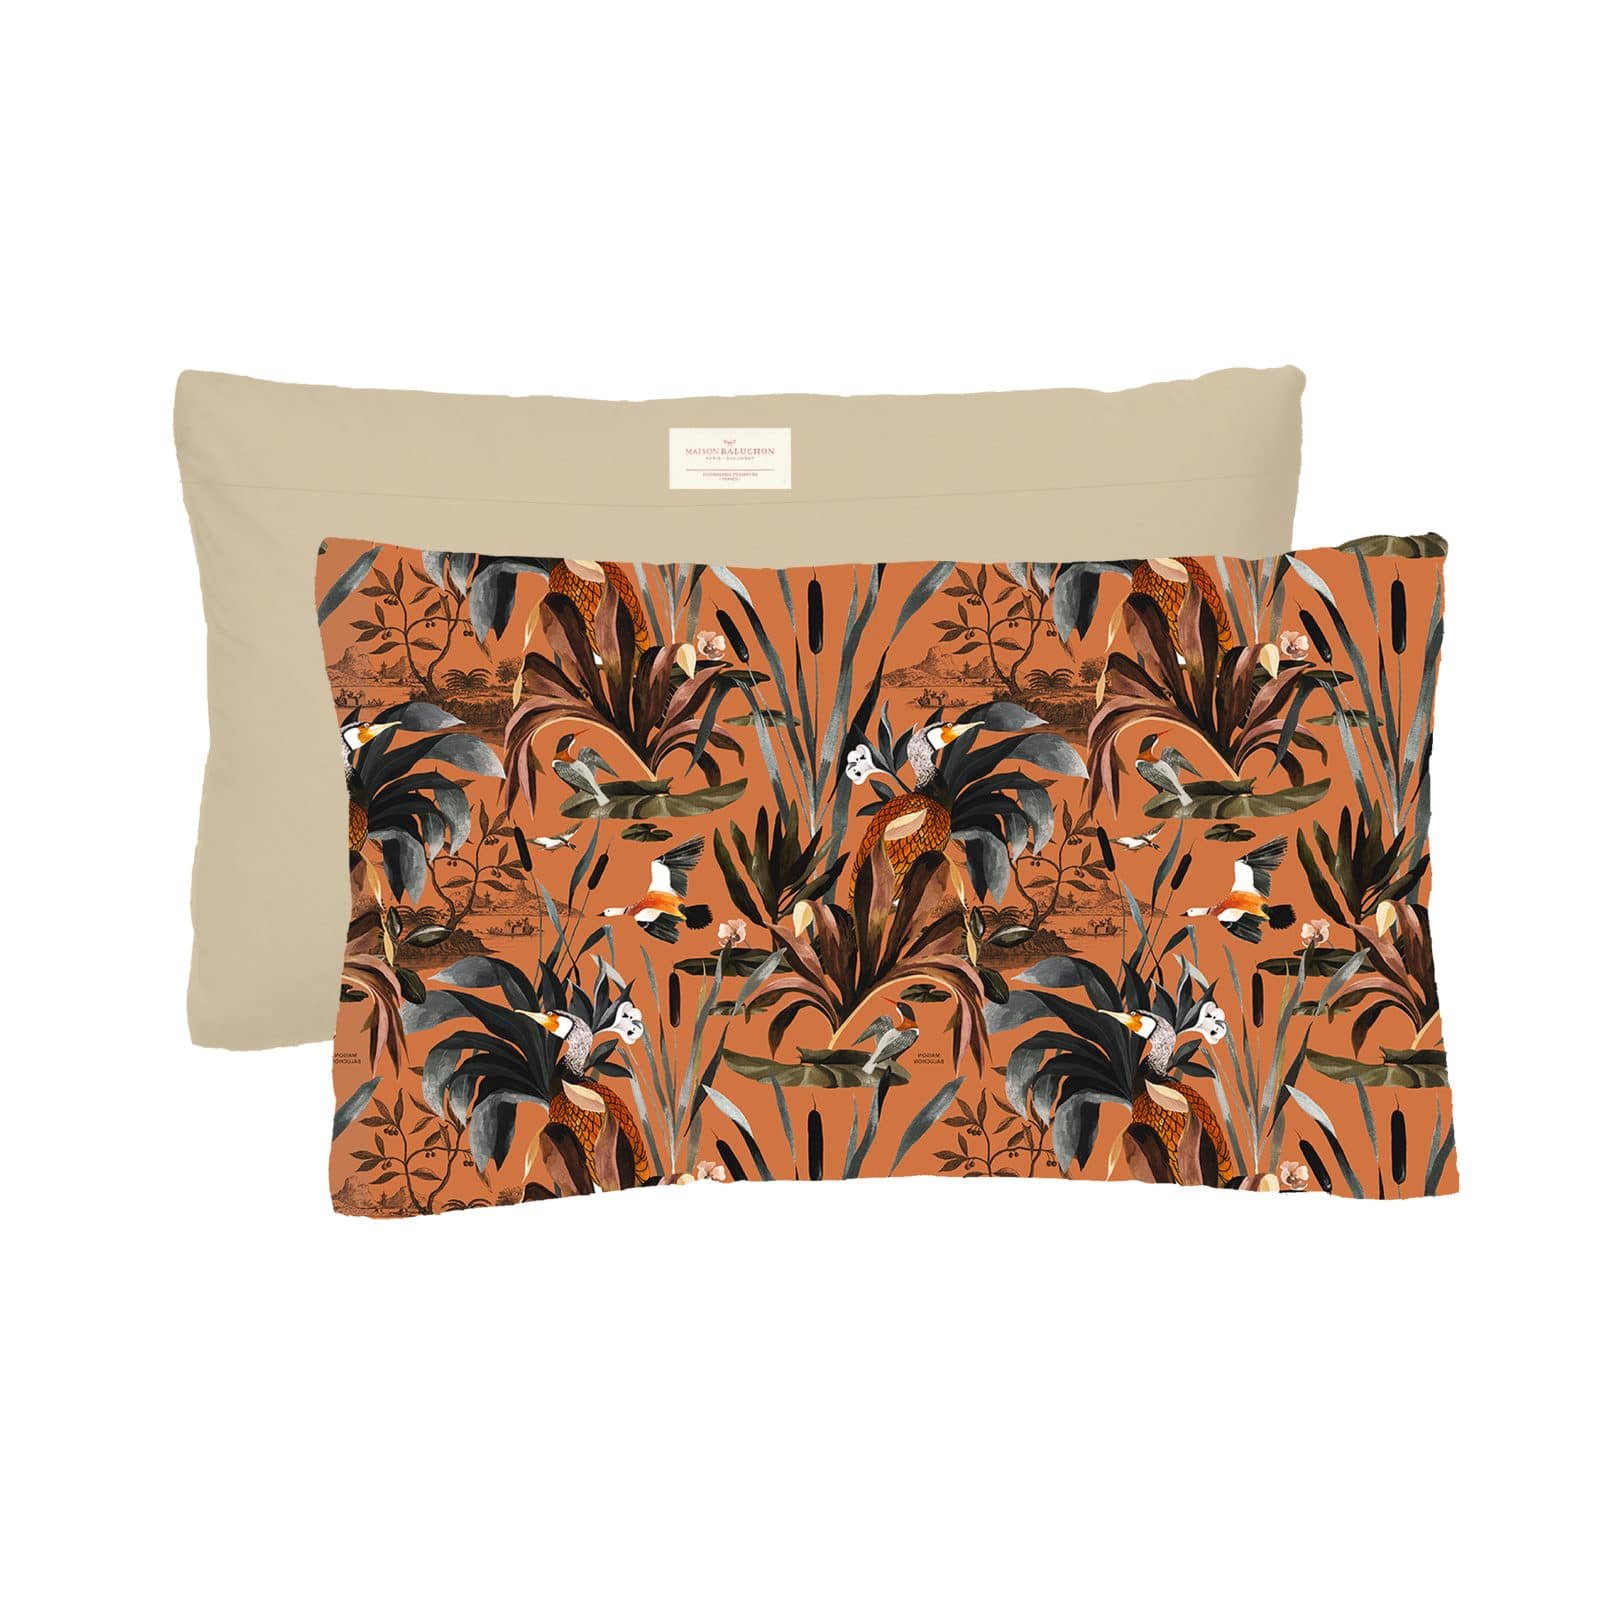 Coussin 50x30 Sauvage N°26 - Terracotta